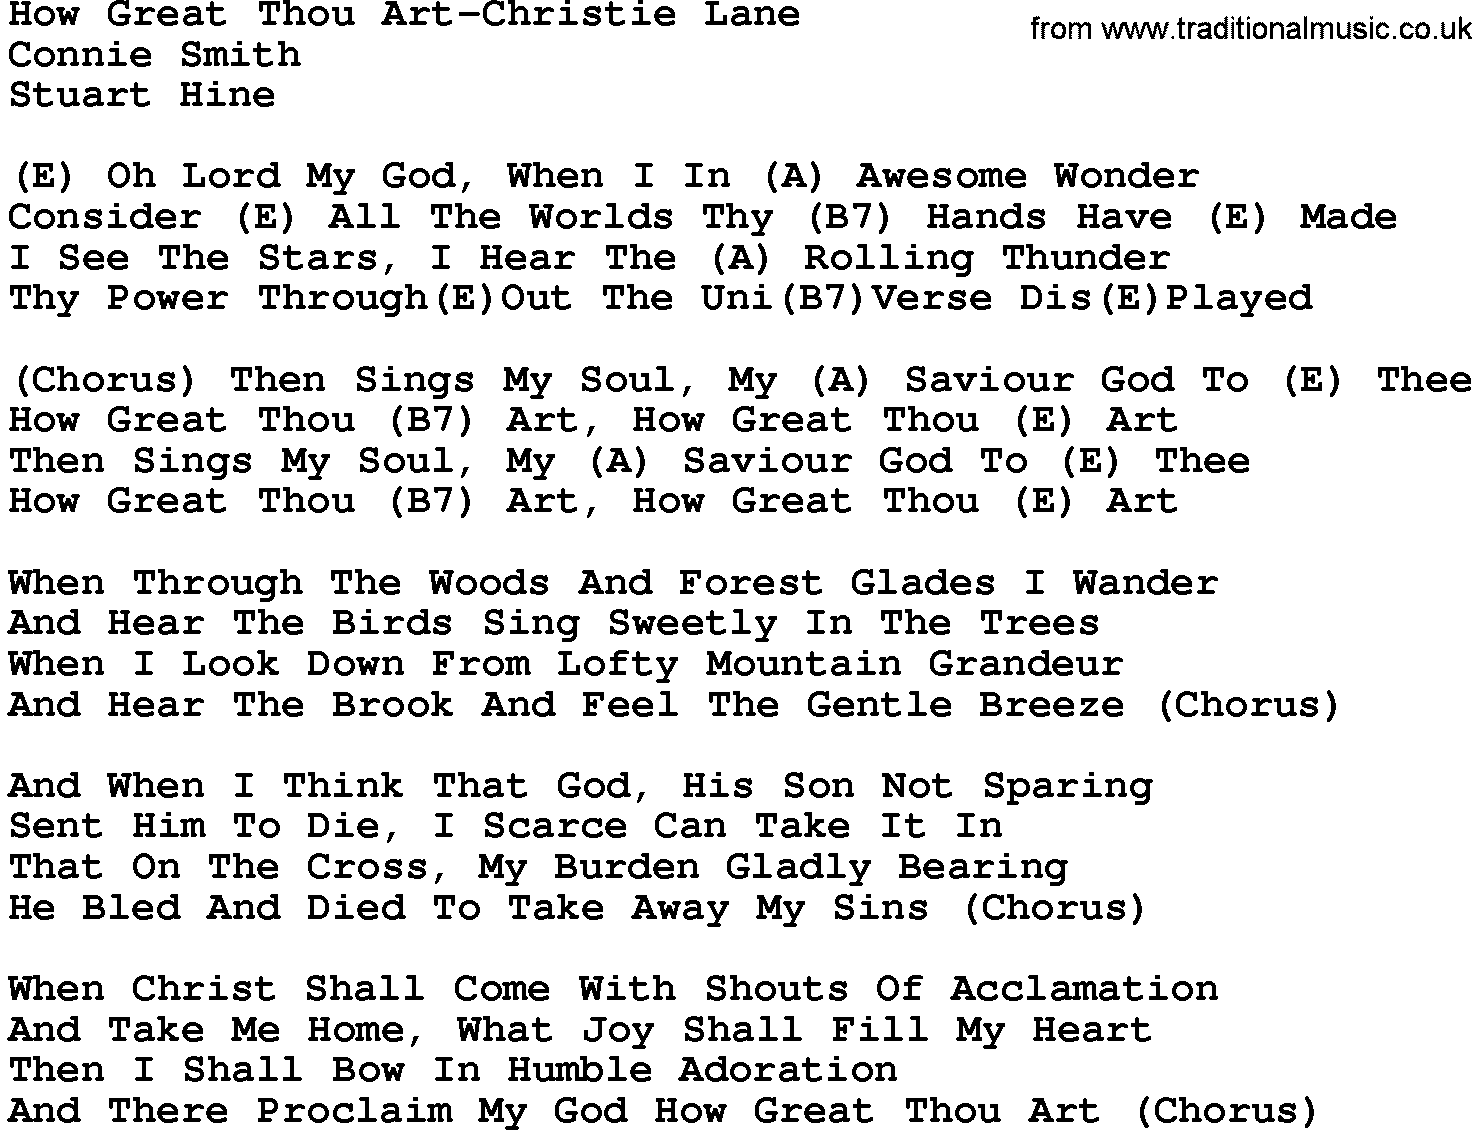 graphic about Mary Did You Know Lyrics Printable called Region Songs:How Superior Thou Artwork-Christie Lane Lyrics and Chords